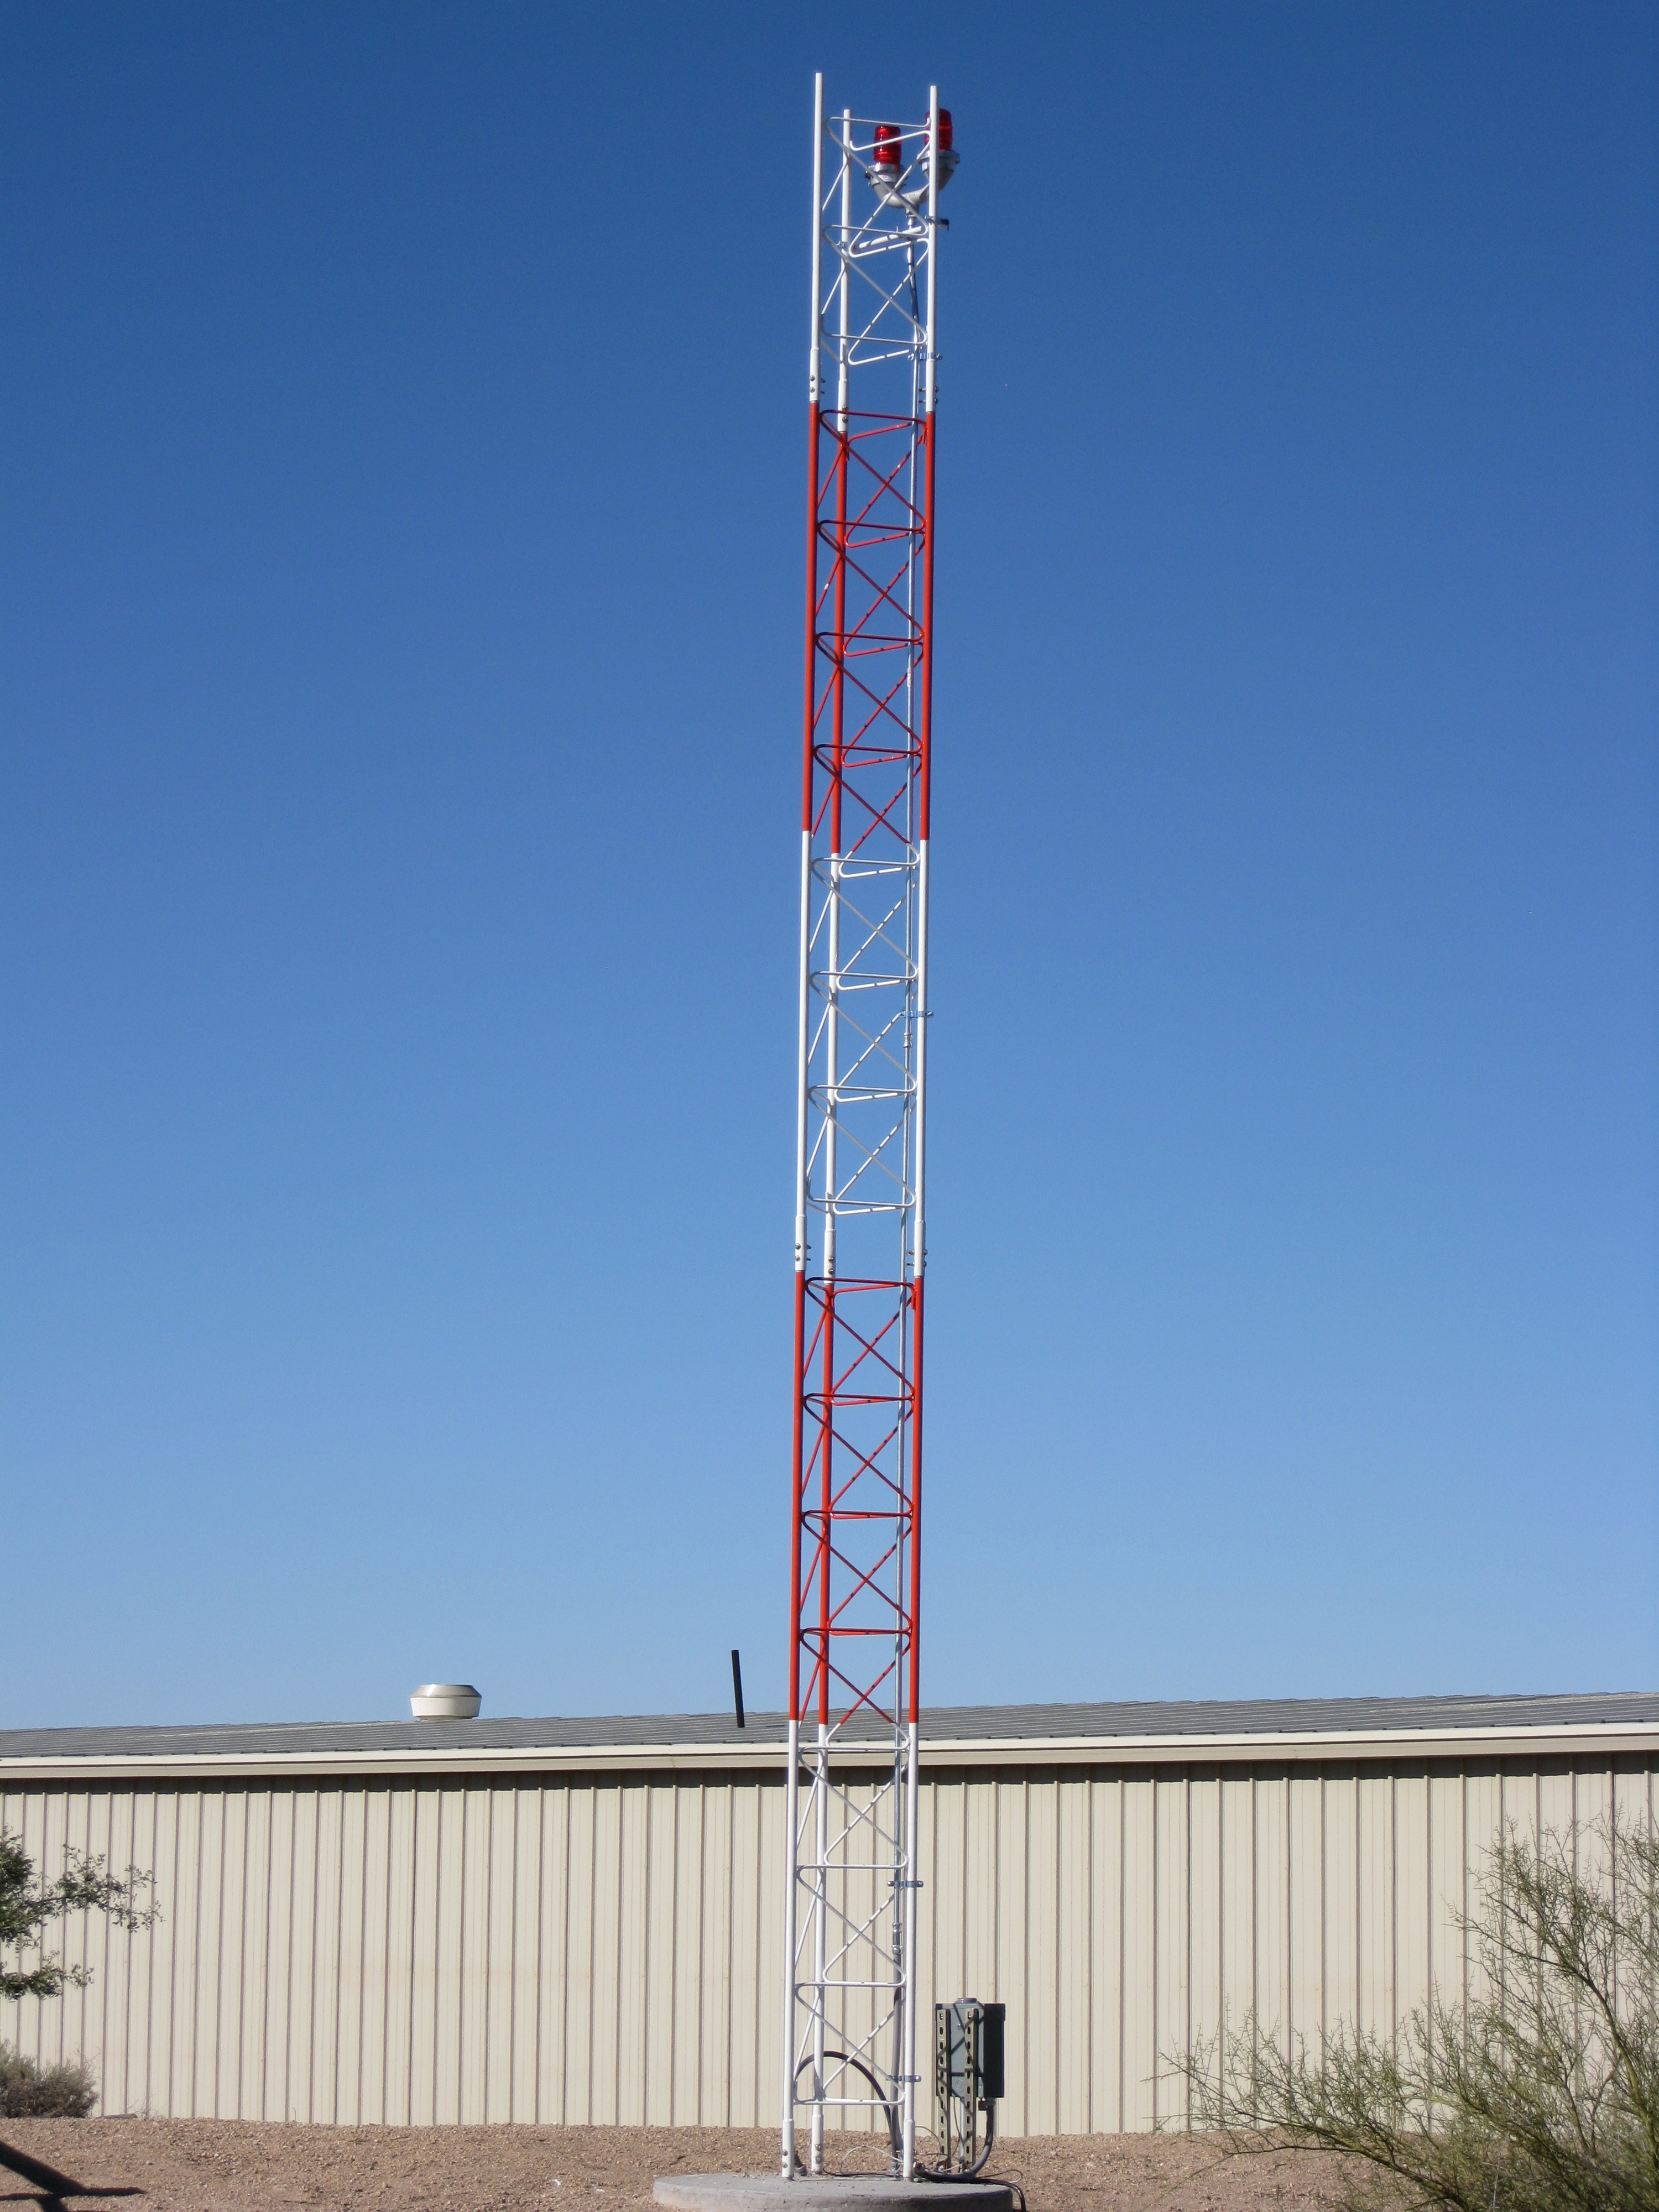 AWOS tower